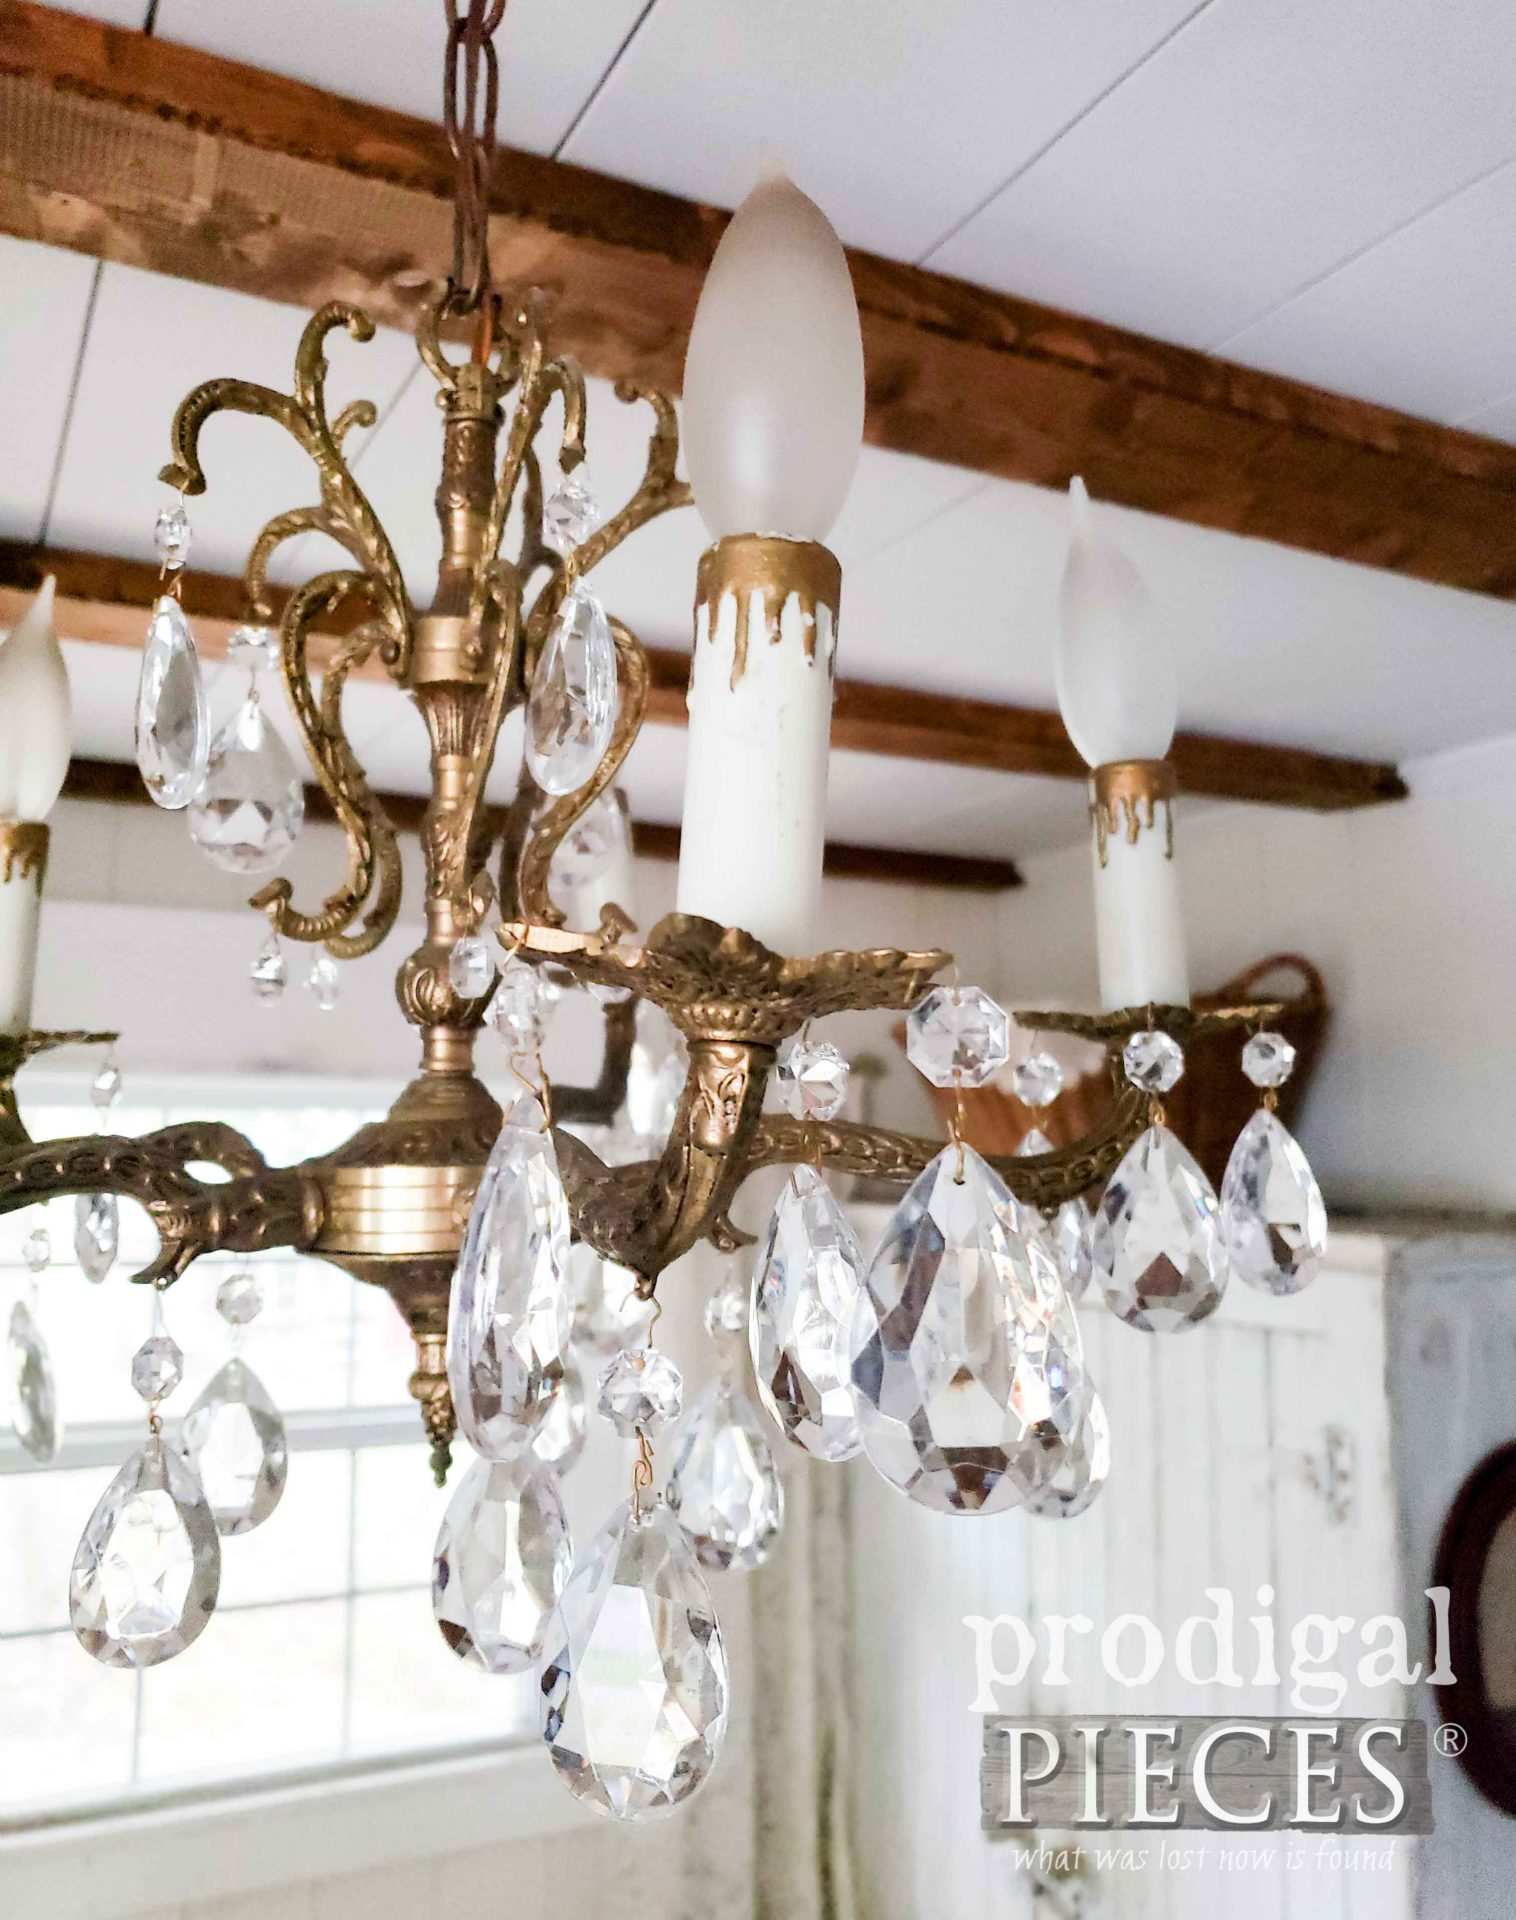 Antique Crystal and Brass Chandelier in Farmhouse Bedroom by Prodigal Pieces | prodigalpieces.com #prodigalpieces